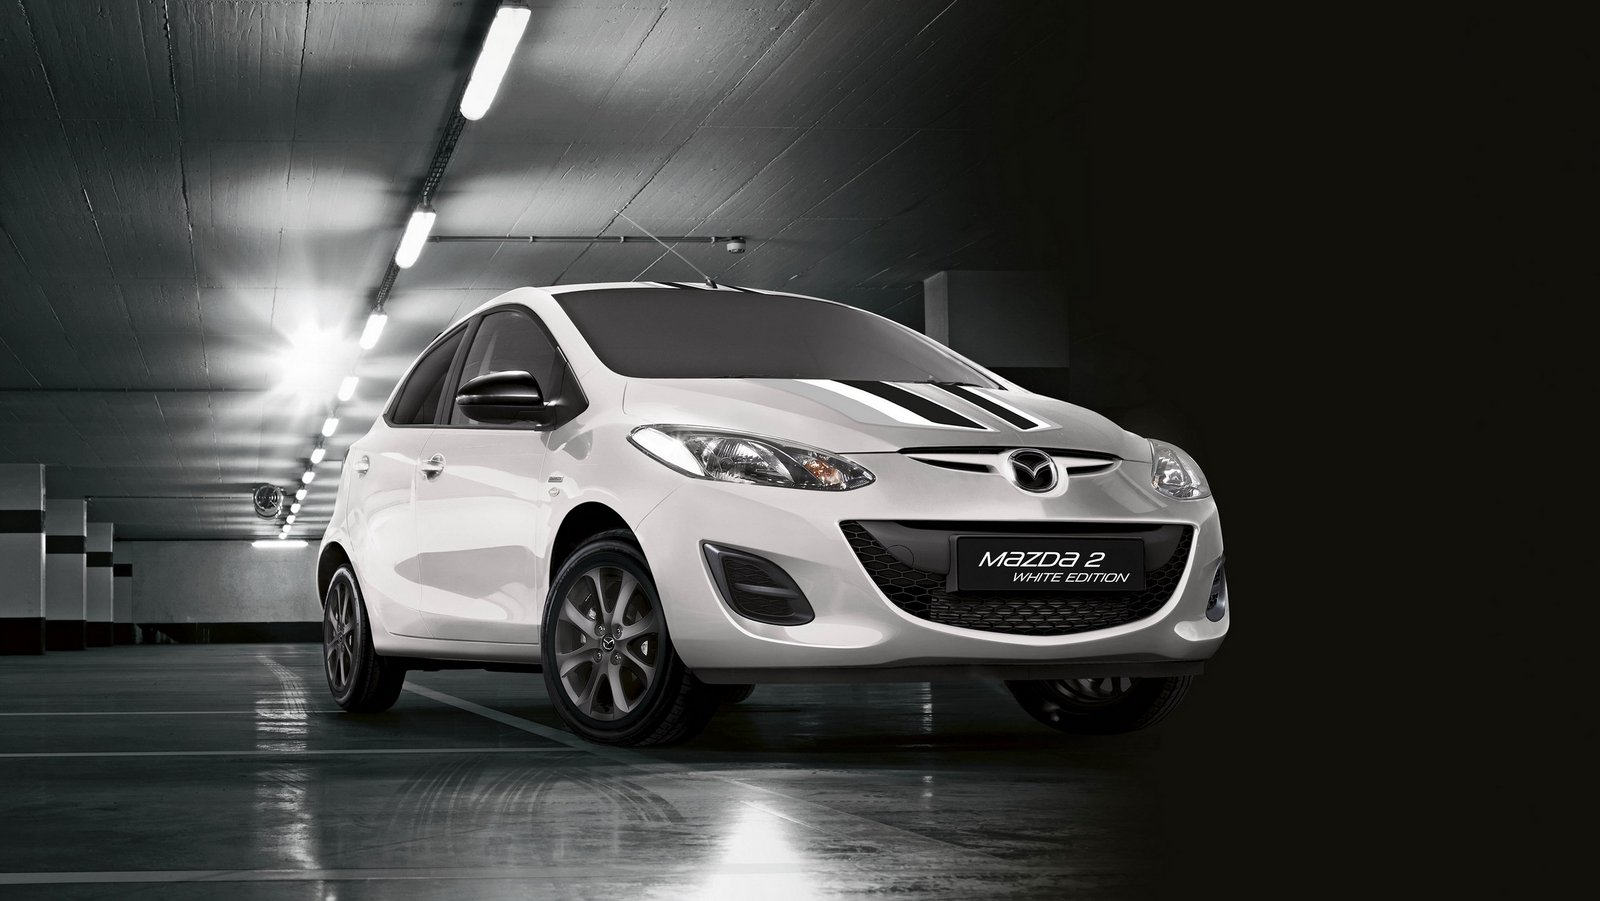 2015 mazda2 black and white edition review top speed. Black Bedroom Furniture Sets. Home Design Ideas